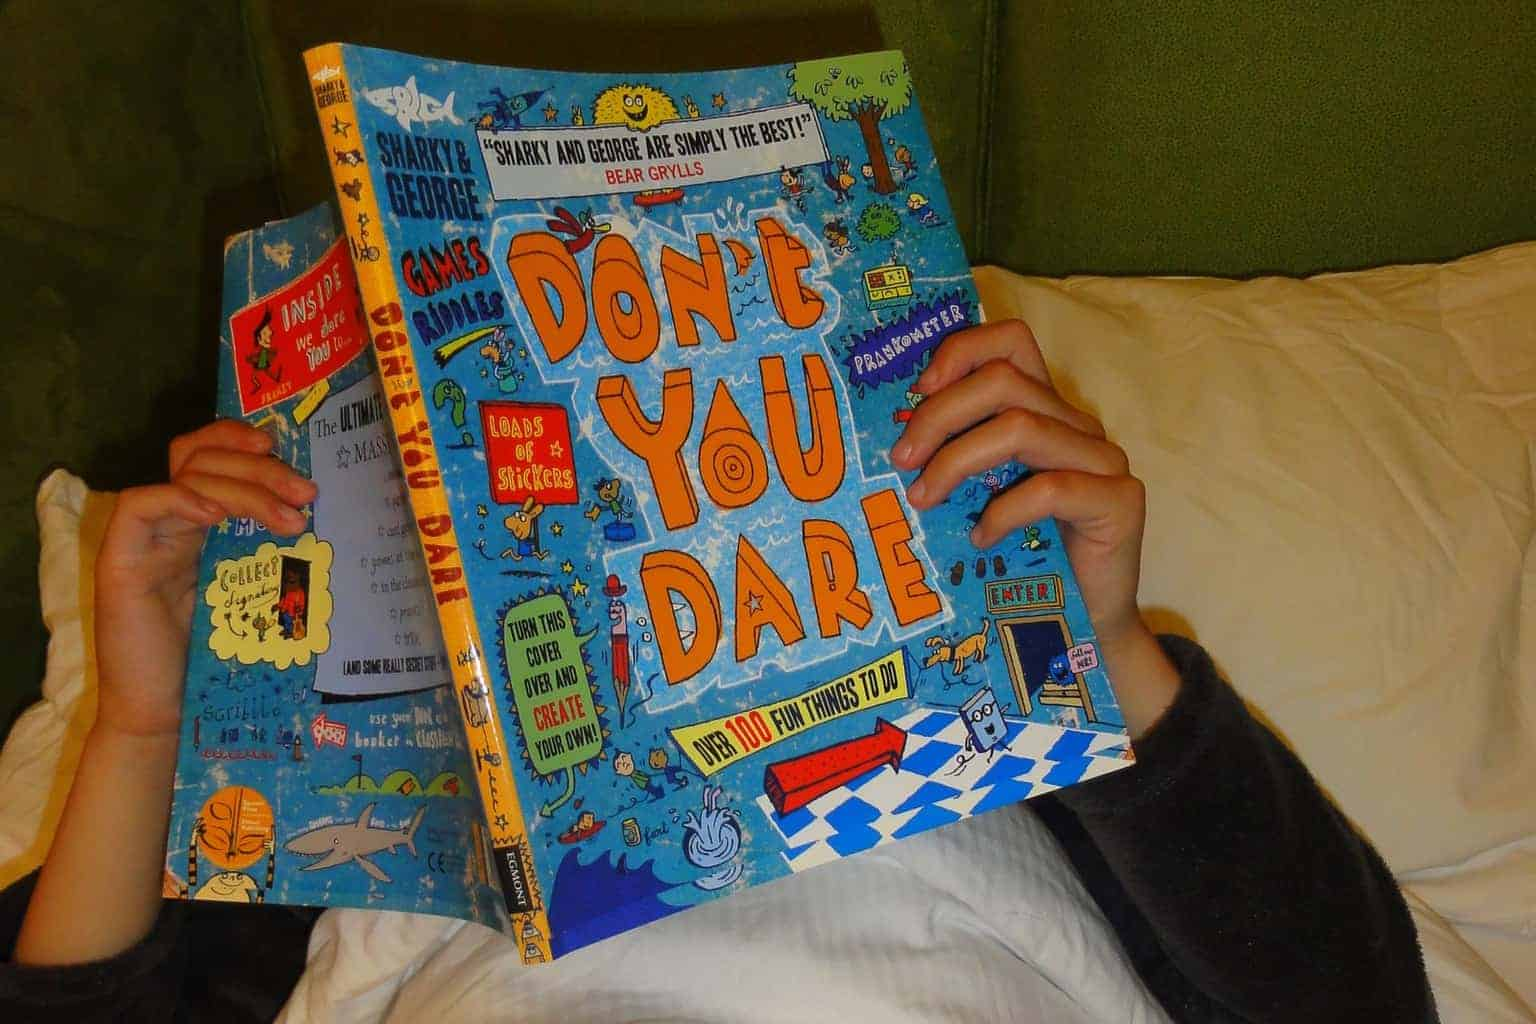 Review: Don't You Dare by Sharky & George 1